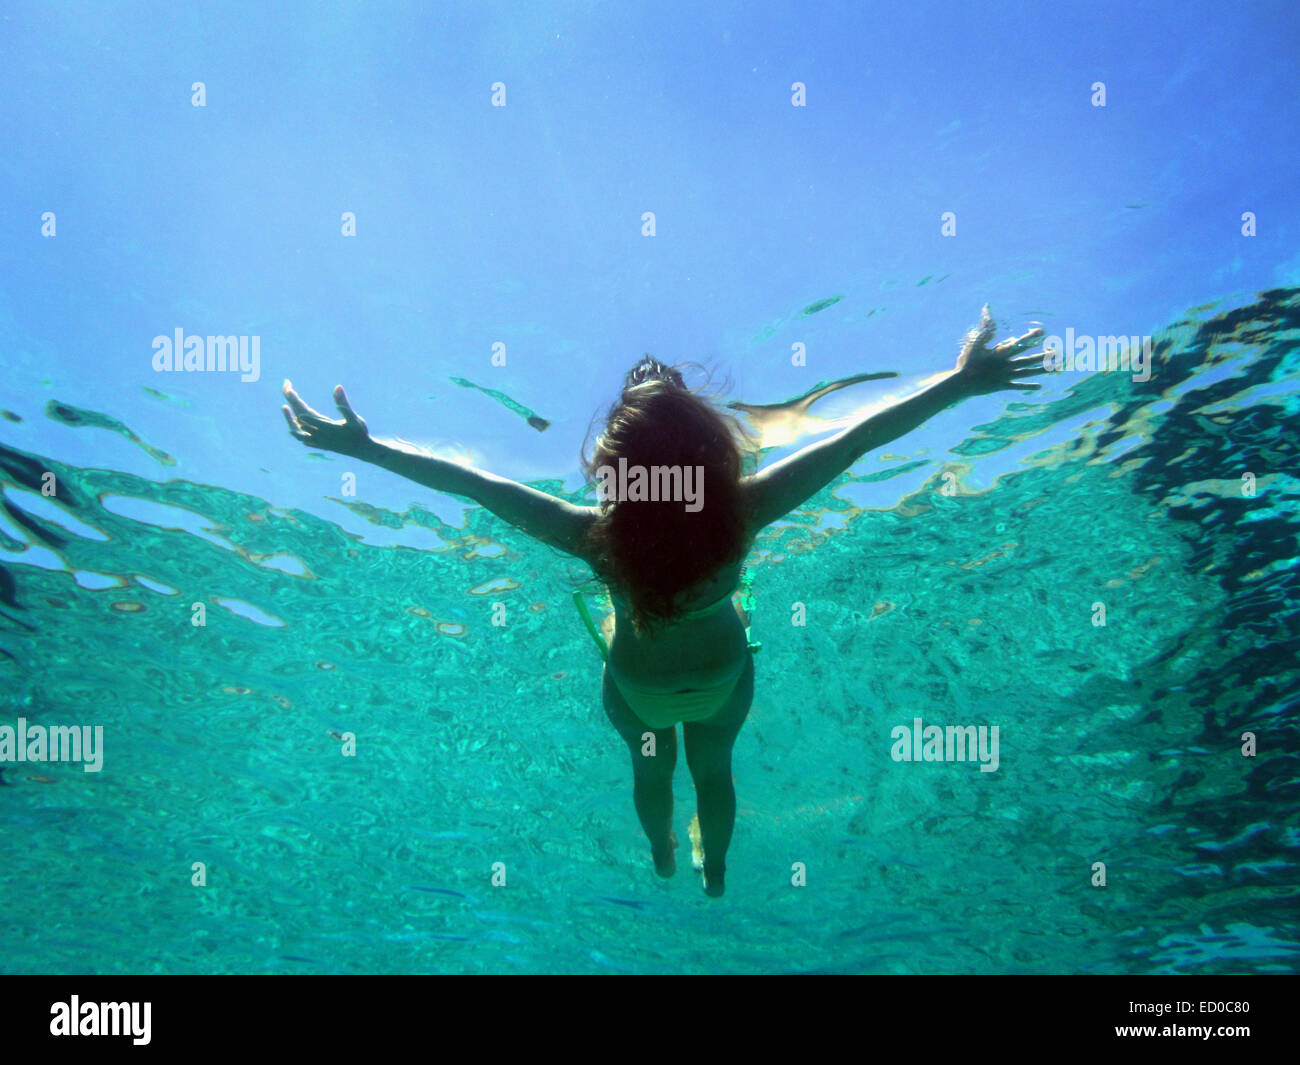 Greece, Dodecanese Prefecture, Chalki, Underwater view of woman floating on water - Stock Image